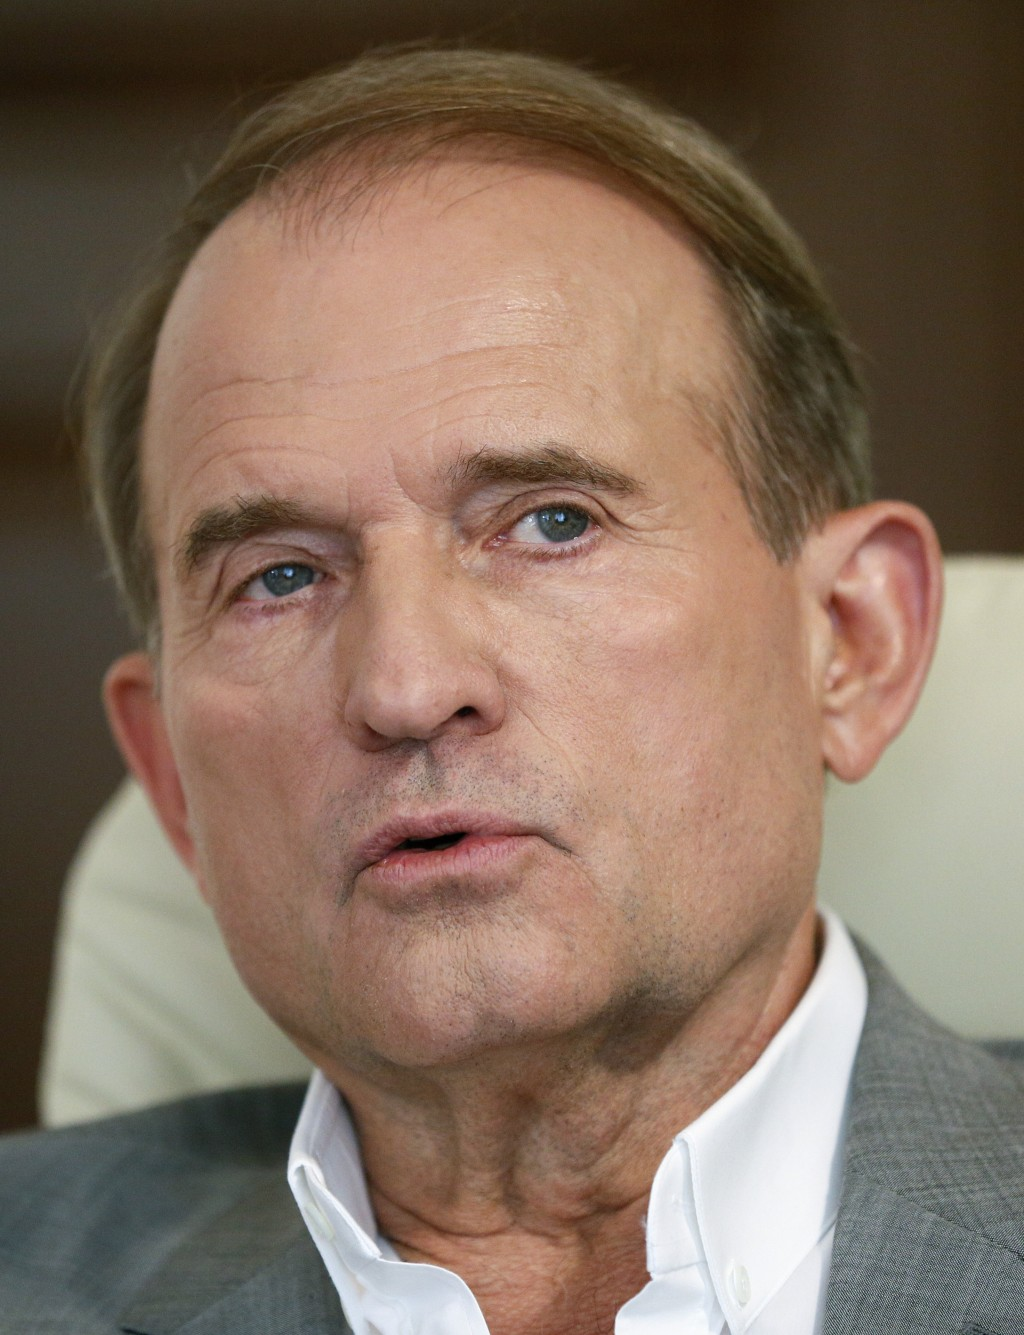 In this photo taken on Friday, July 12, 2019 a party led by one of Russian President Vladimir Putin's closest associates, tycoon Viktor Medvedchuk, ta